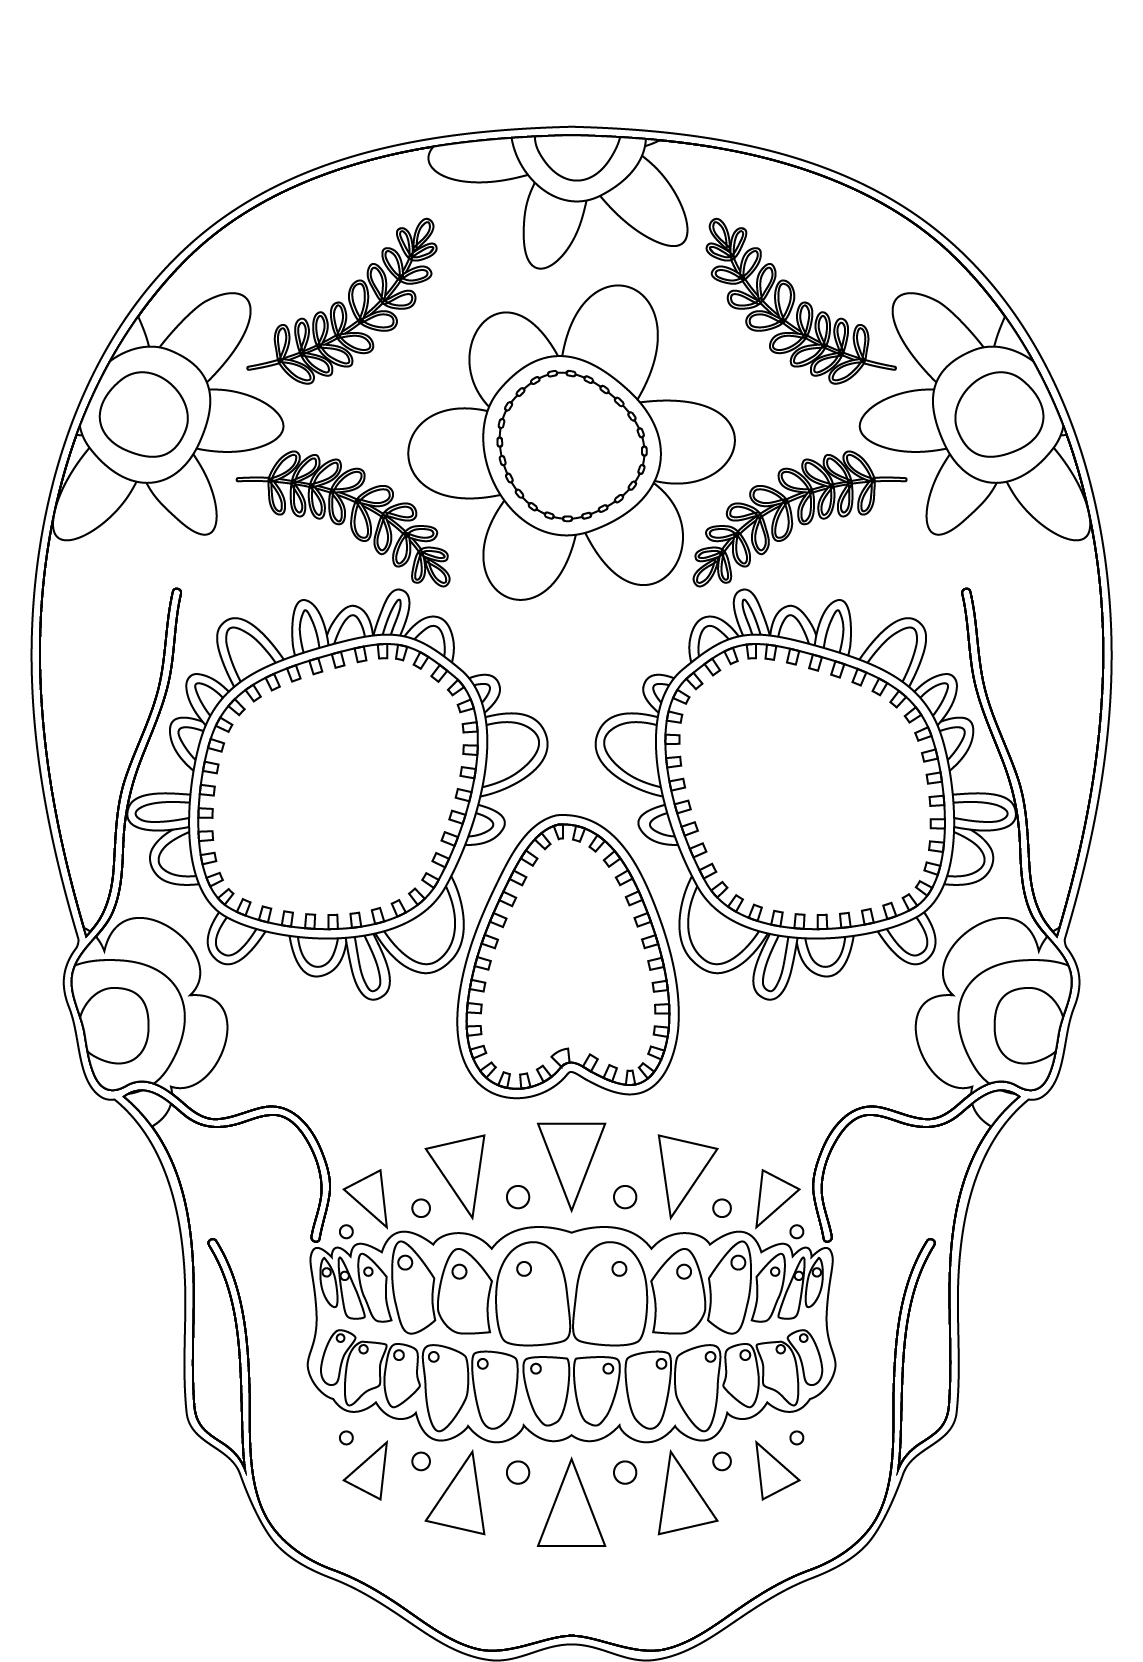 Imprimer Des Coloriages Makeup Skull Face Artherapie Artherapie Ca